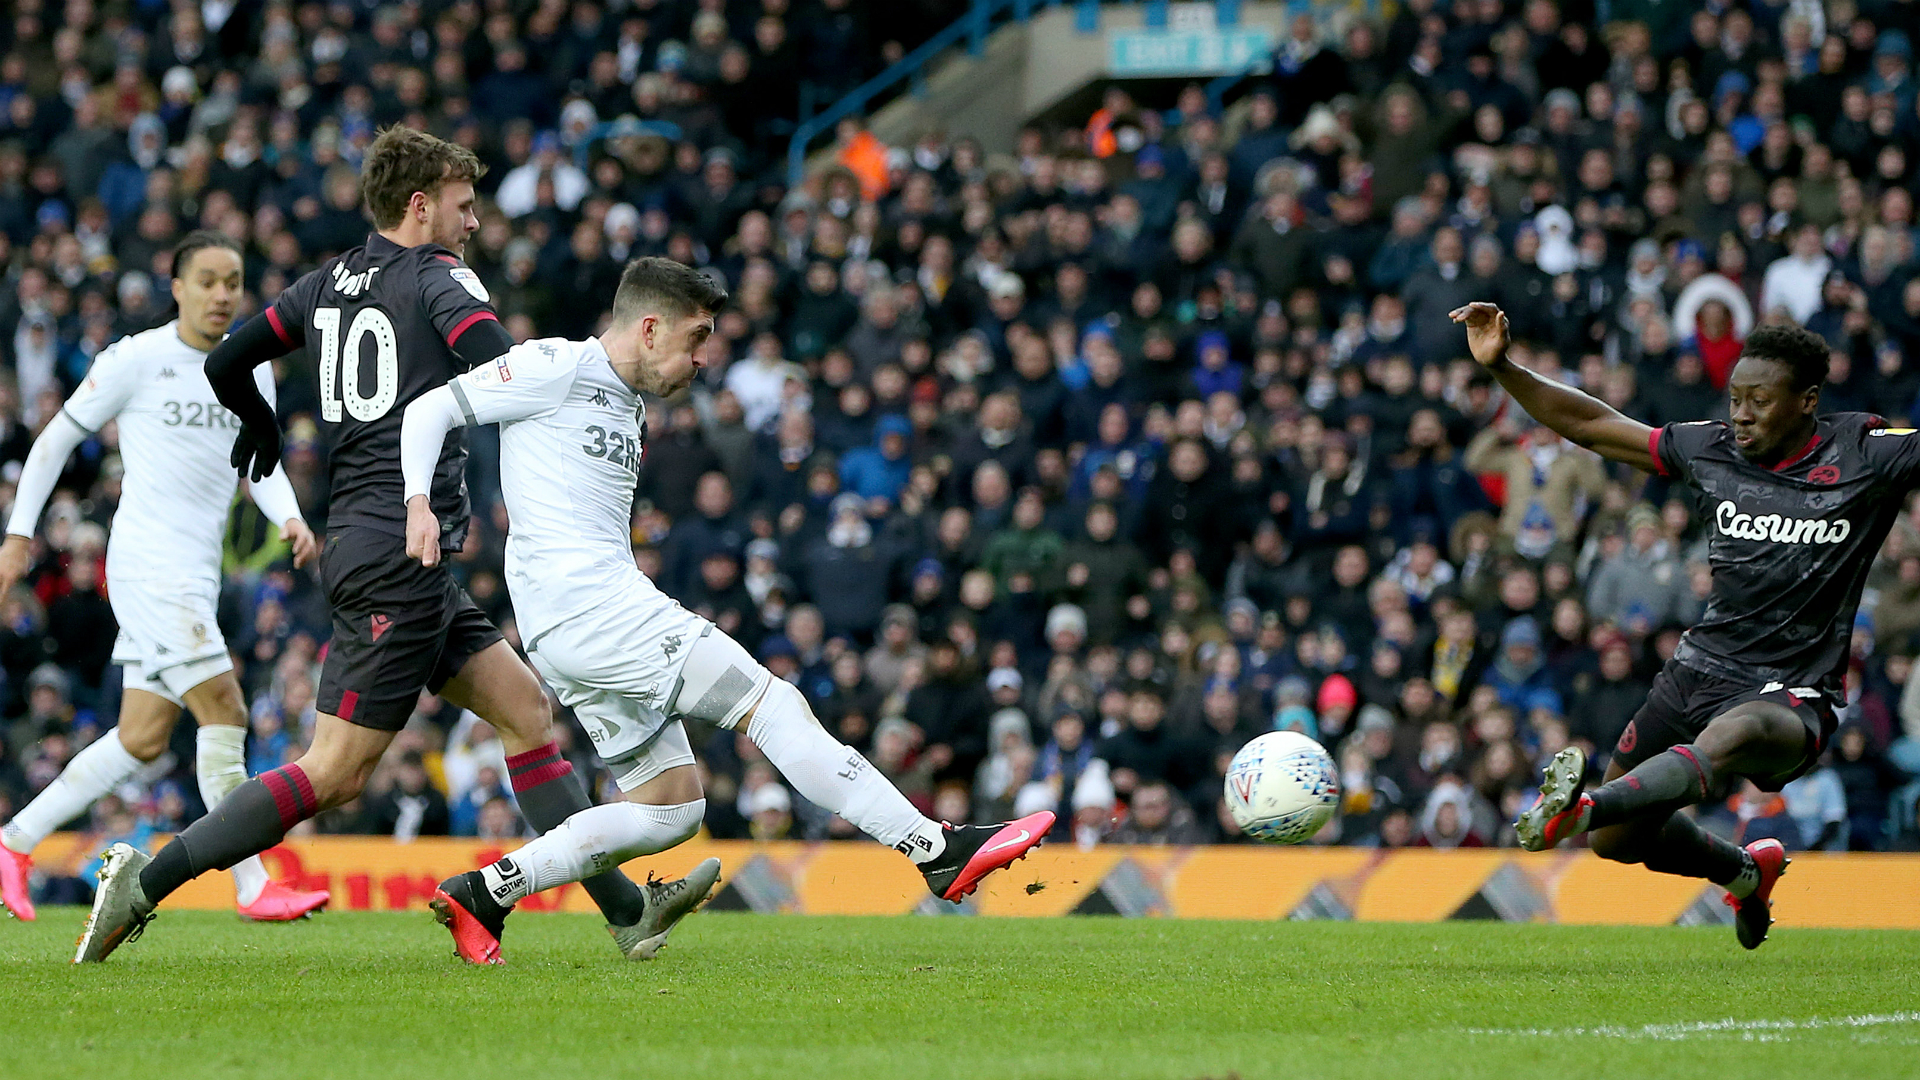 Championship: Leeds United pull clear of chasing pack